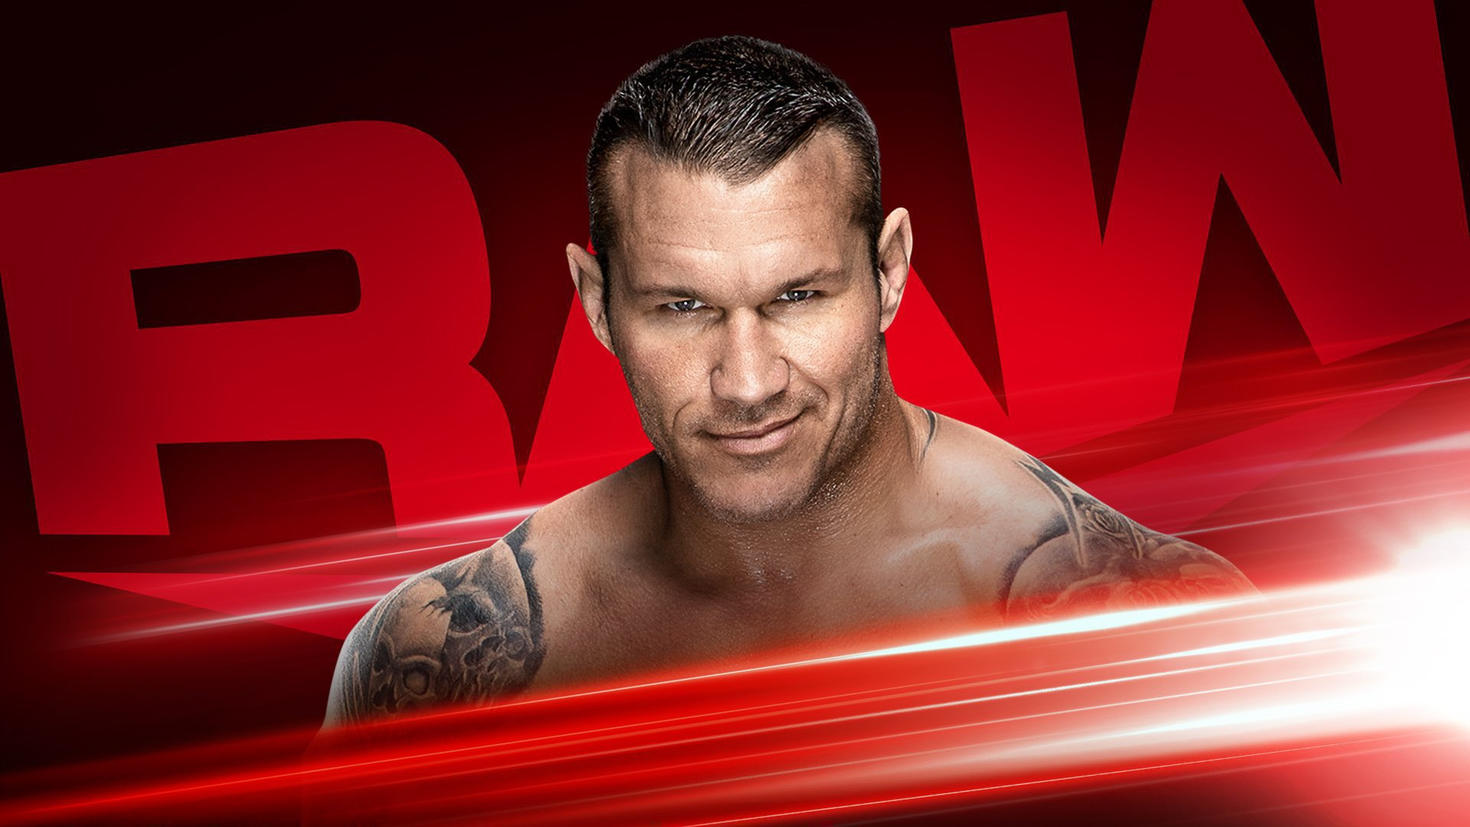 WWE Raw Preview (27/07/20): Drew McIntyre vs Dolph Ziggler; Sasha Banks vs Asuka 3